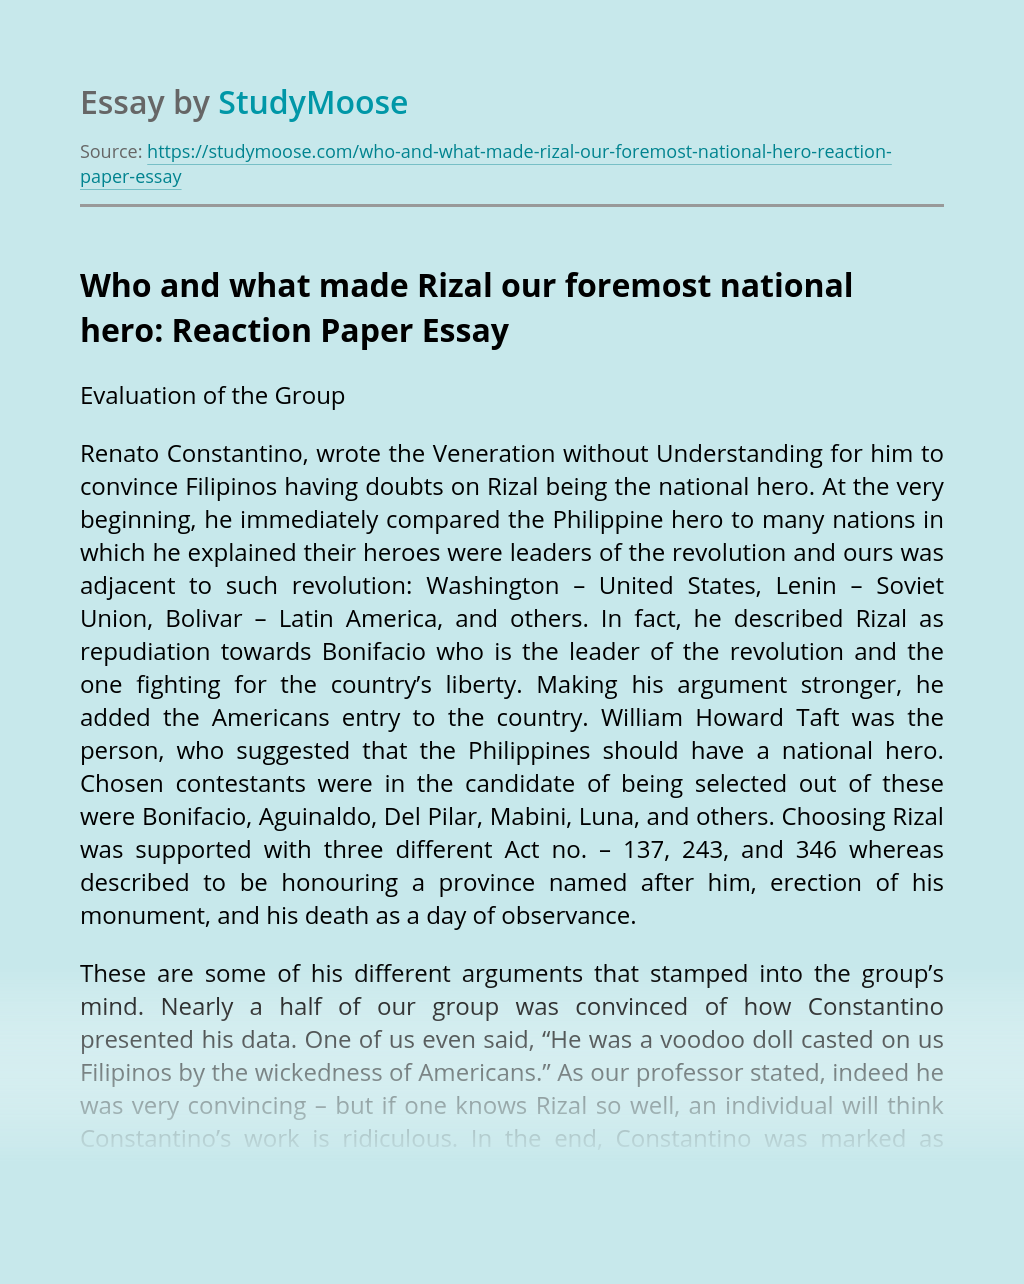 Who and what made Rizal our foremost national hero: Reaction Paper